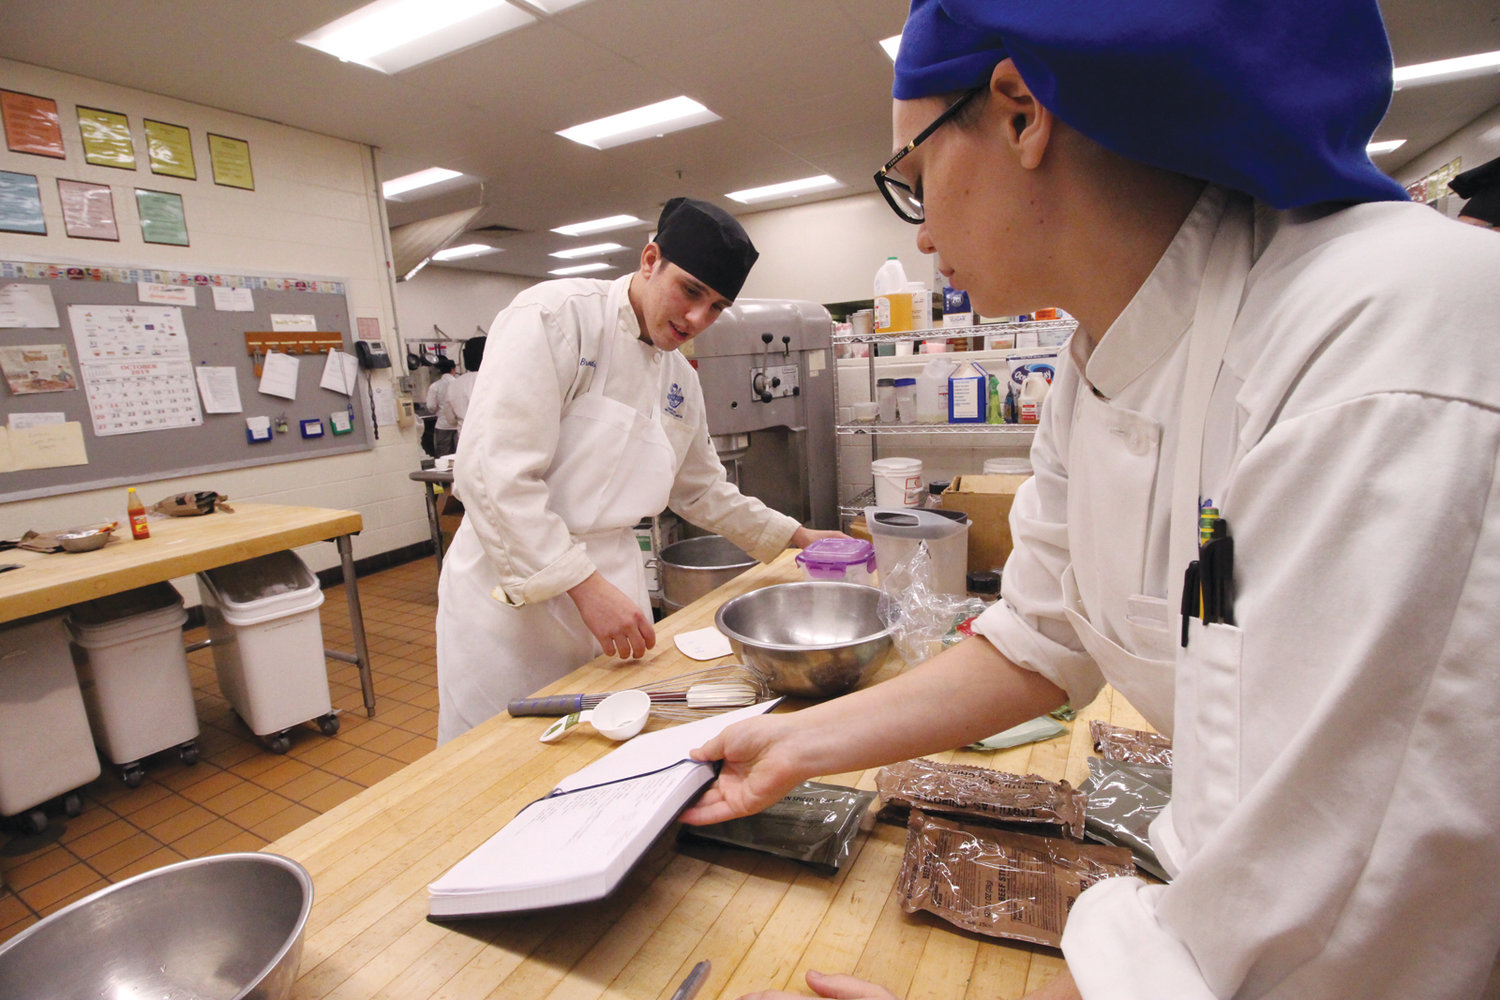 DESSERT IN THE MAKING: Using the contents of a military MRE, Warwick Area Career and Technical Center culinary students Brendon Rios and Isabella Wright made an apple trifle.